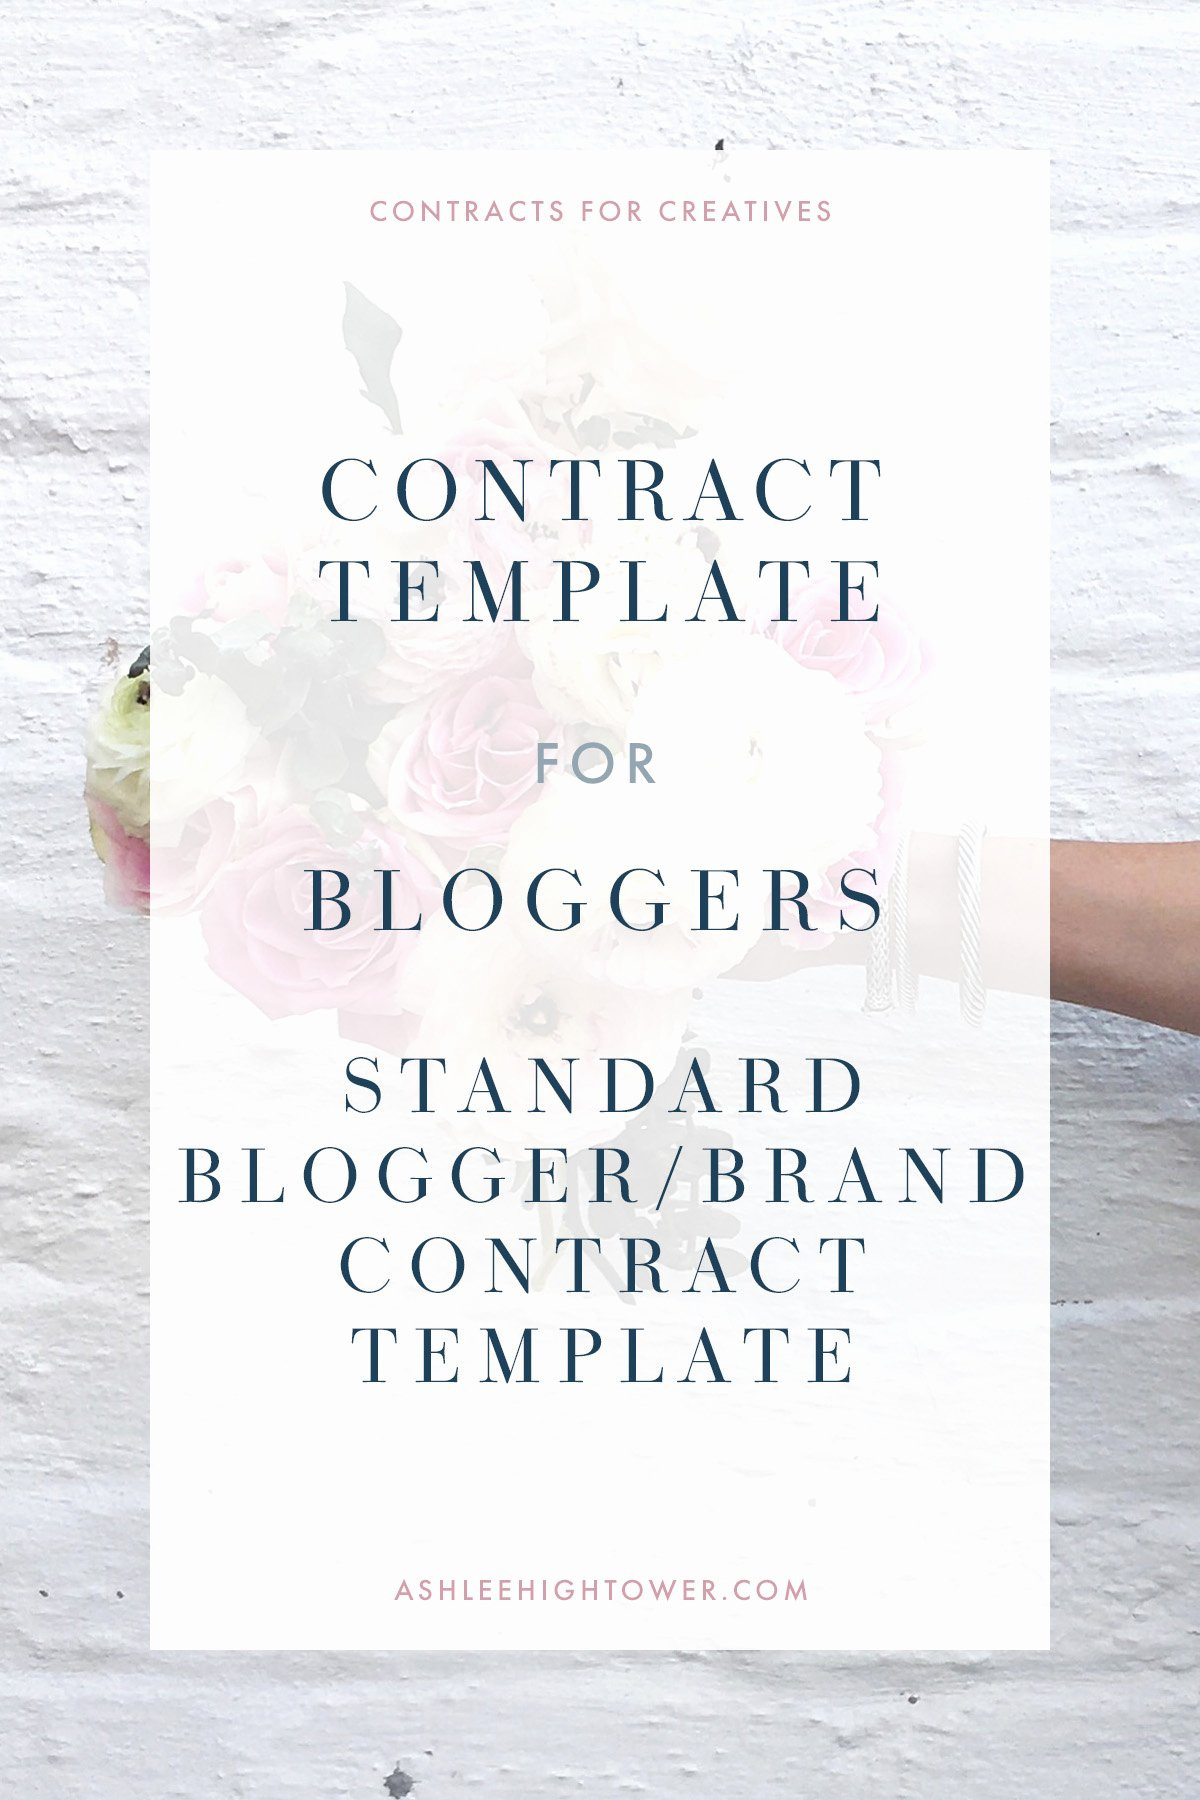 Event Planning Contract Template Free Unique Blogger Brand Contract Contract for Bloggers